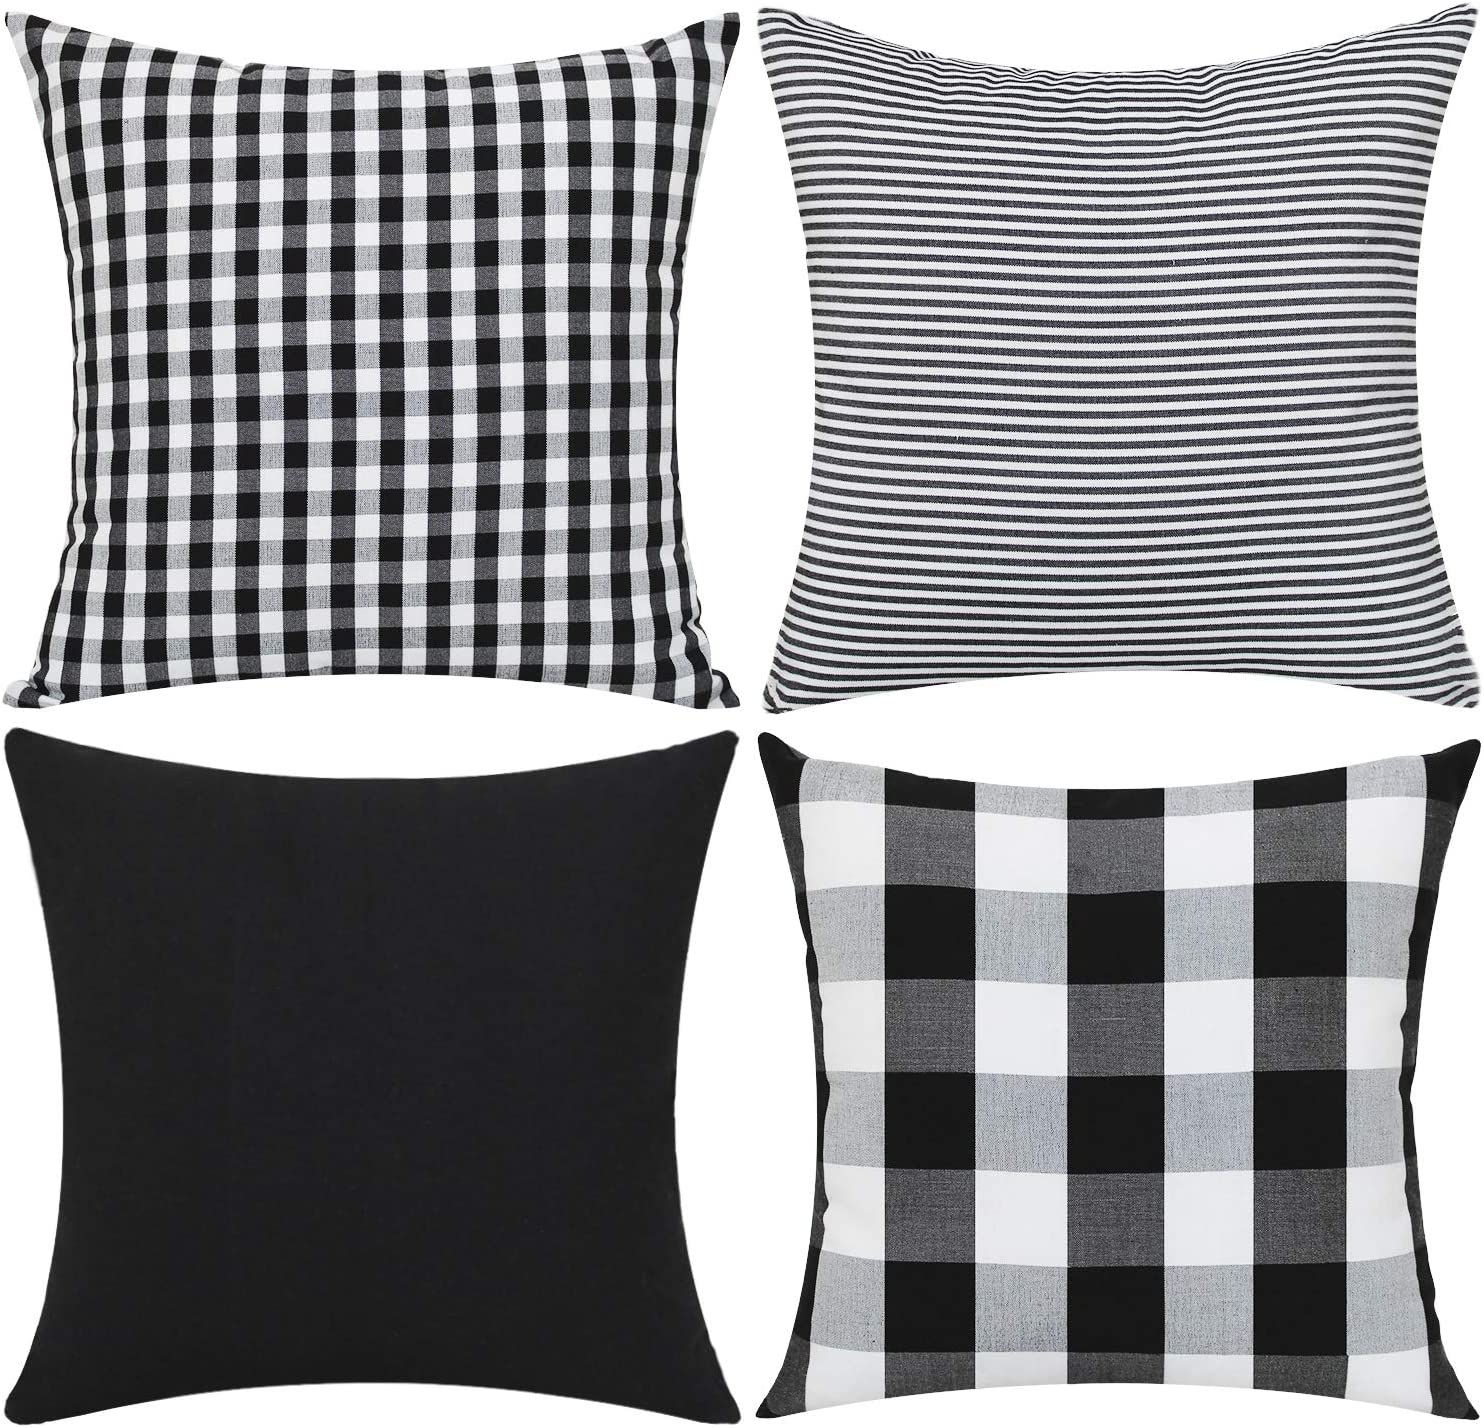 "Gysan Farmhouse Decorations Christmas Home Decor Bed Sofa Throw Pillow Case Cushion Covers Classic Retro Checkers Plaids (Black White Set of 4, 18"" x 18"")"